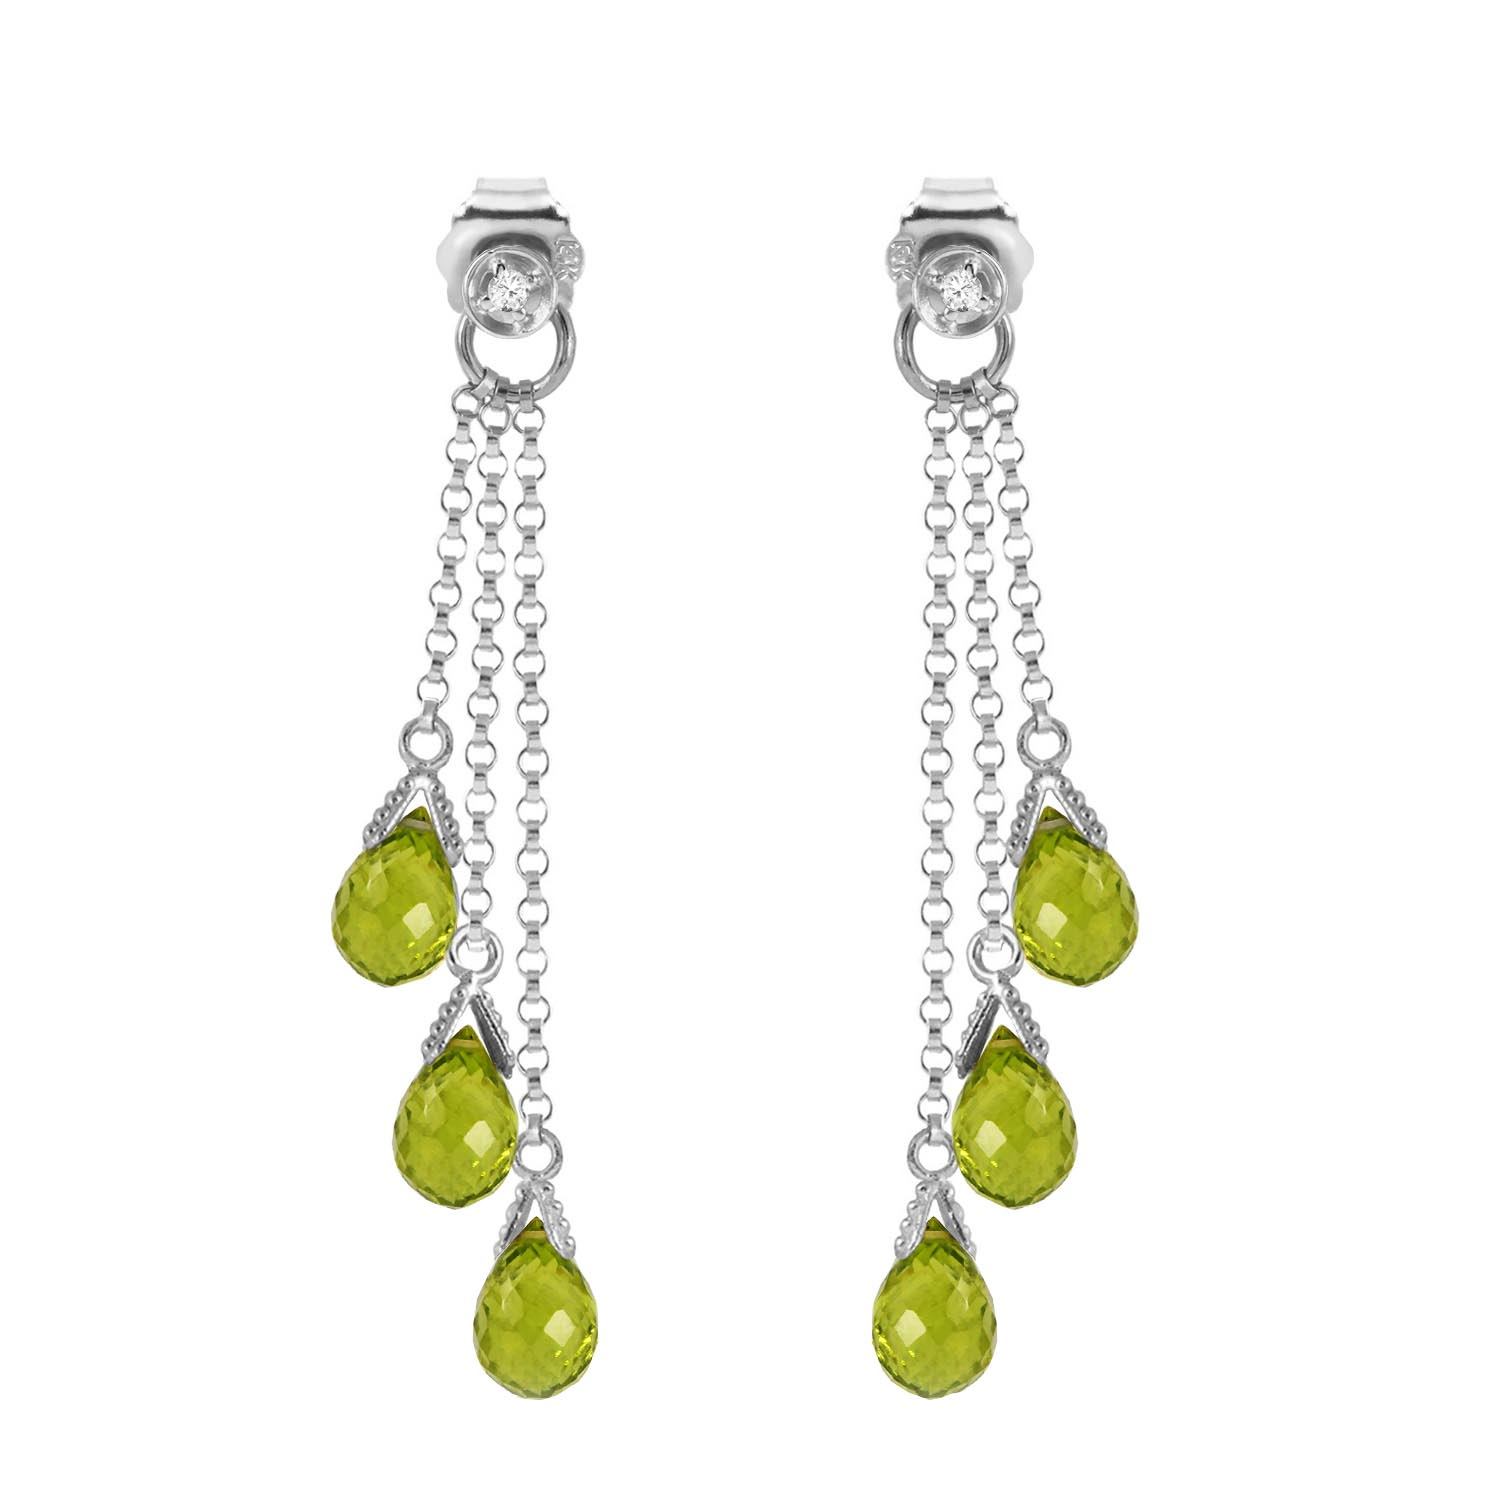 Peridot and Diamond Trilogy Droplet Earrings 10.5ct in 9ct White Gold